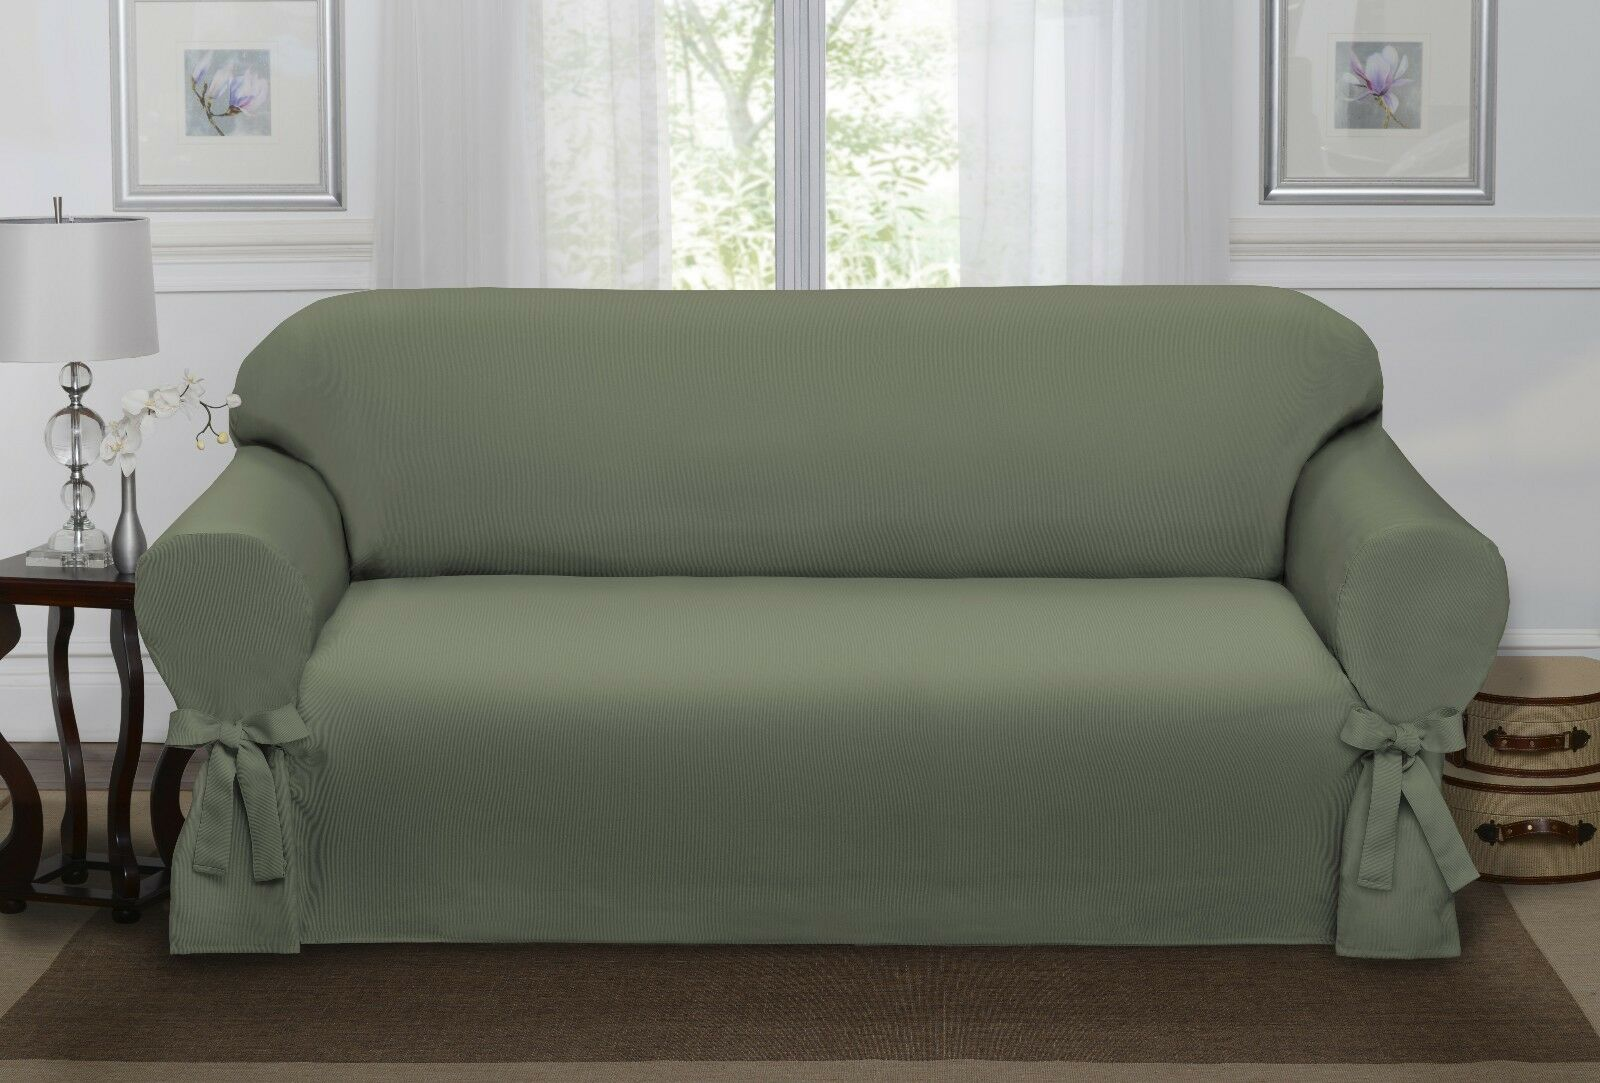 Sage green loden lucerne sofa slipcover couch cover sofa for Furniture covers